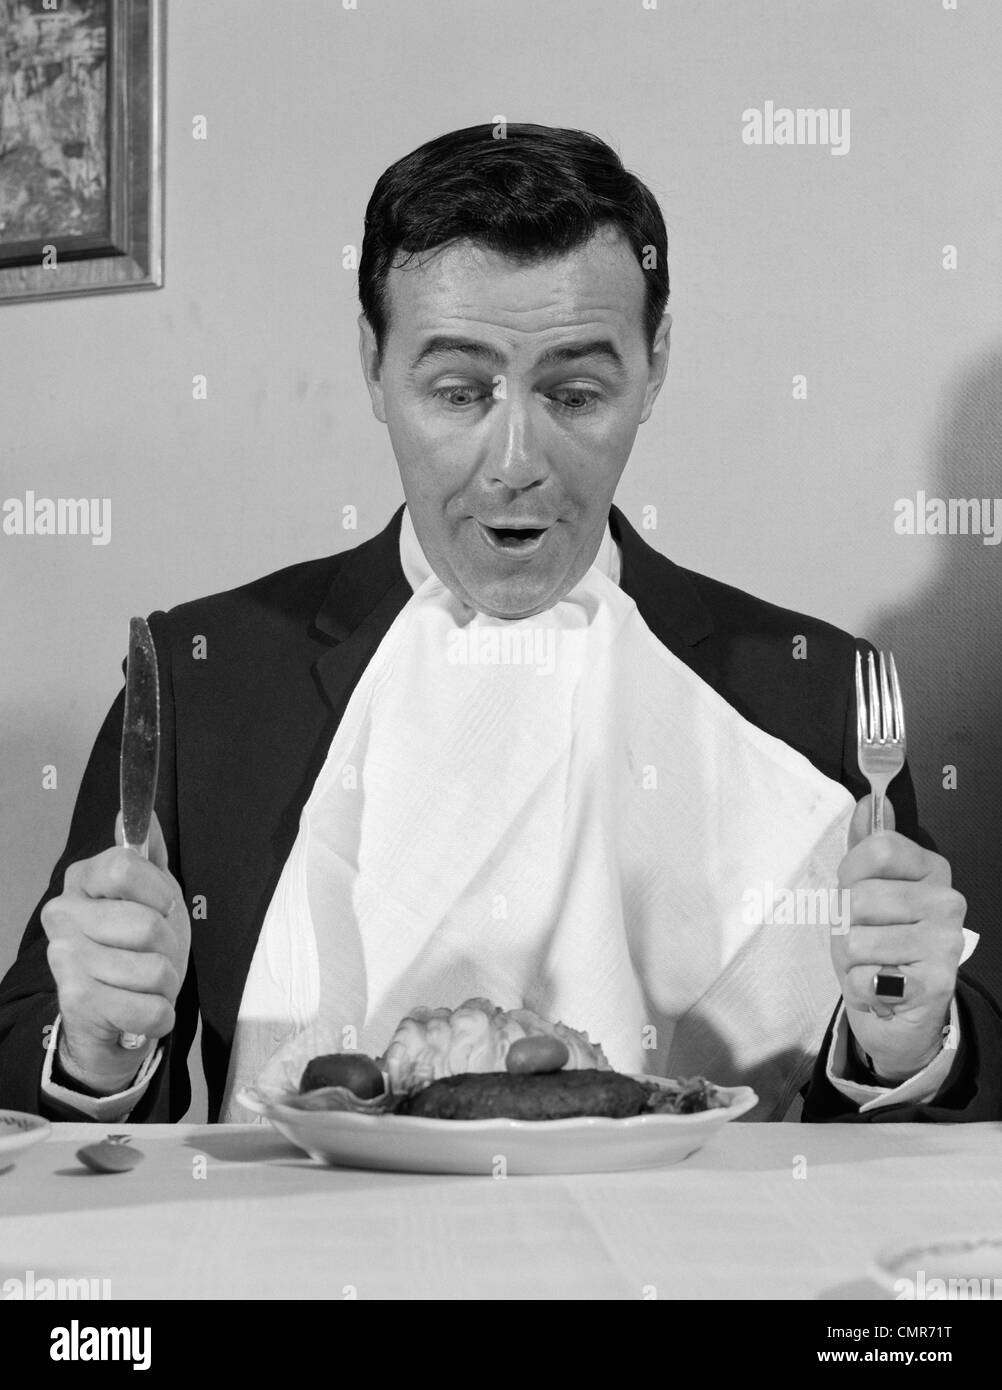 1960s Man Sitting At Table Ready To Eat Dinner With Napkin  : 1960s man sitting at table ready to eat dinner with napkin at neck CMR71T from www.alamy.com size 1002 x 1390 jpeg 118kB